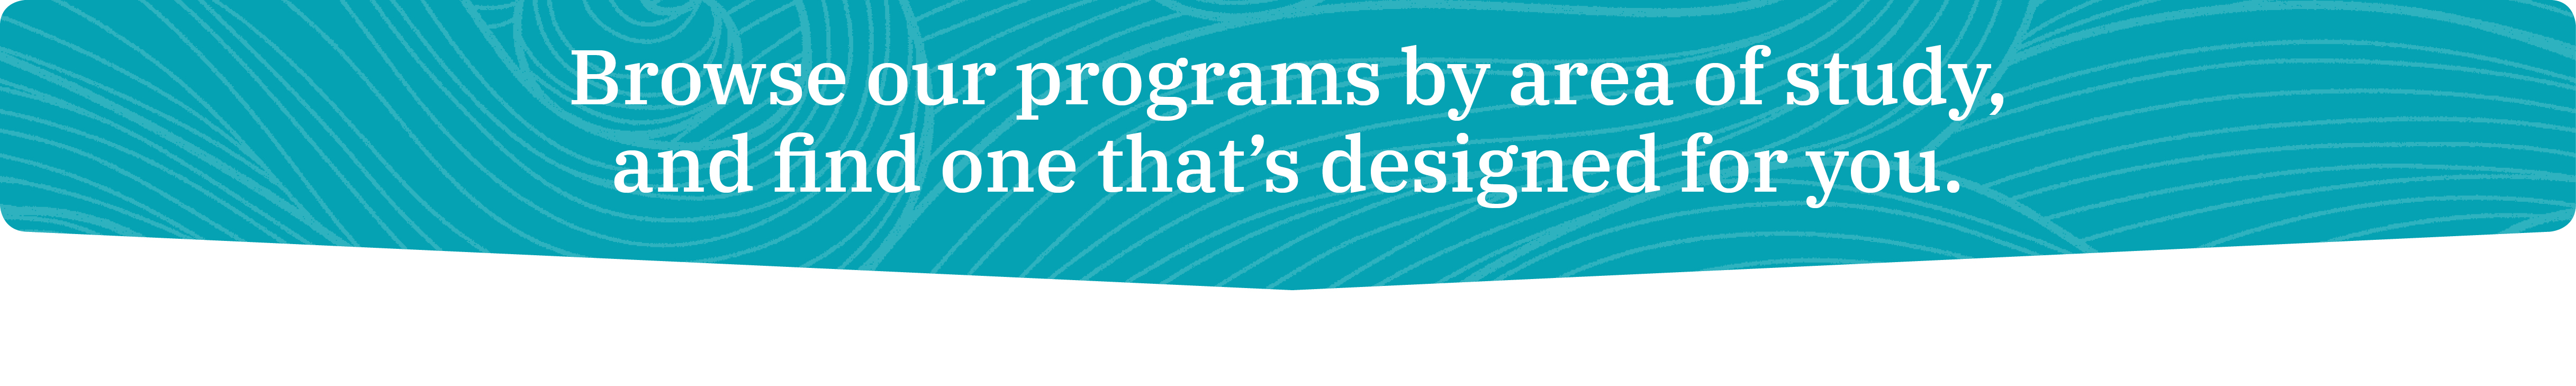 Browse our programs by area of study, and find one that's designed for you.